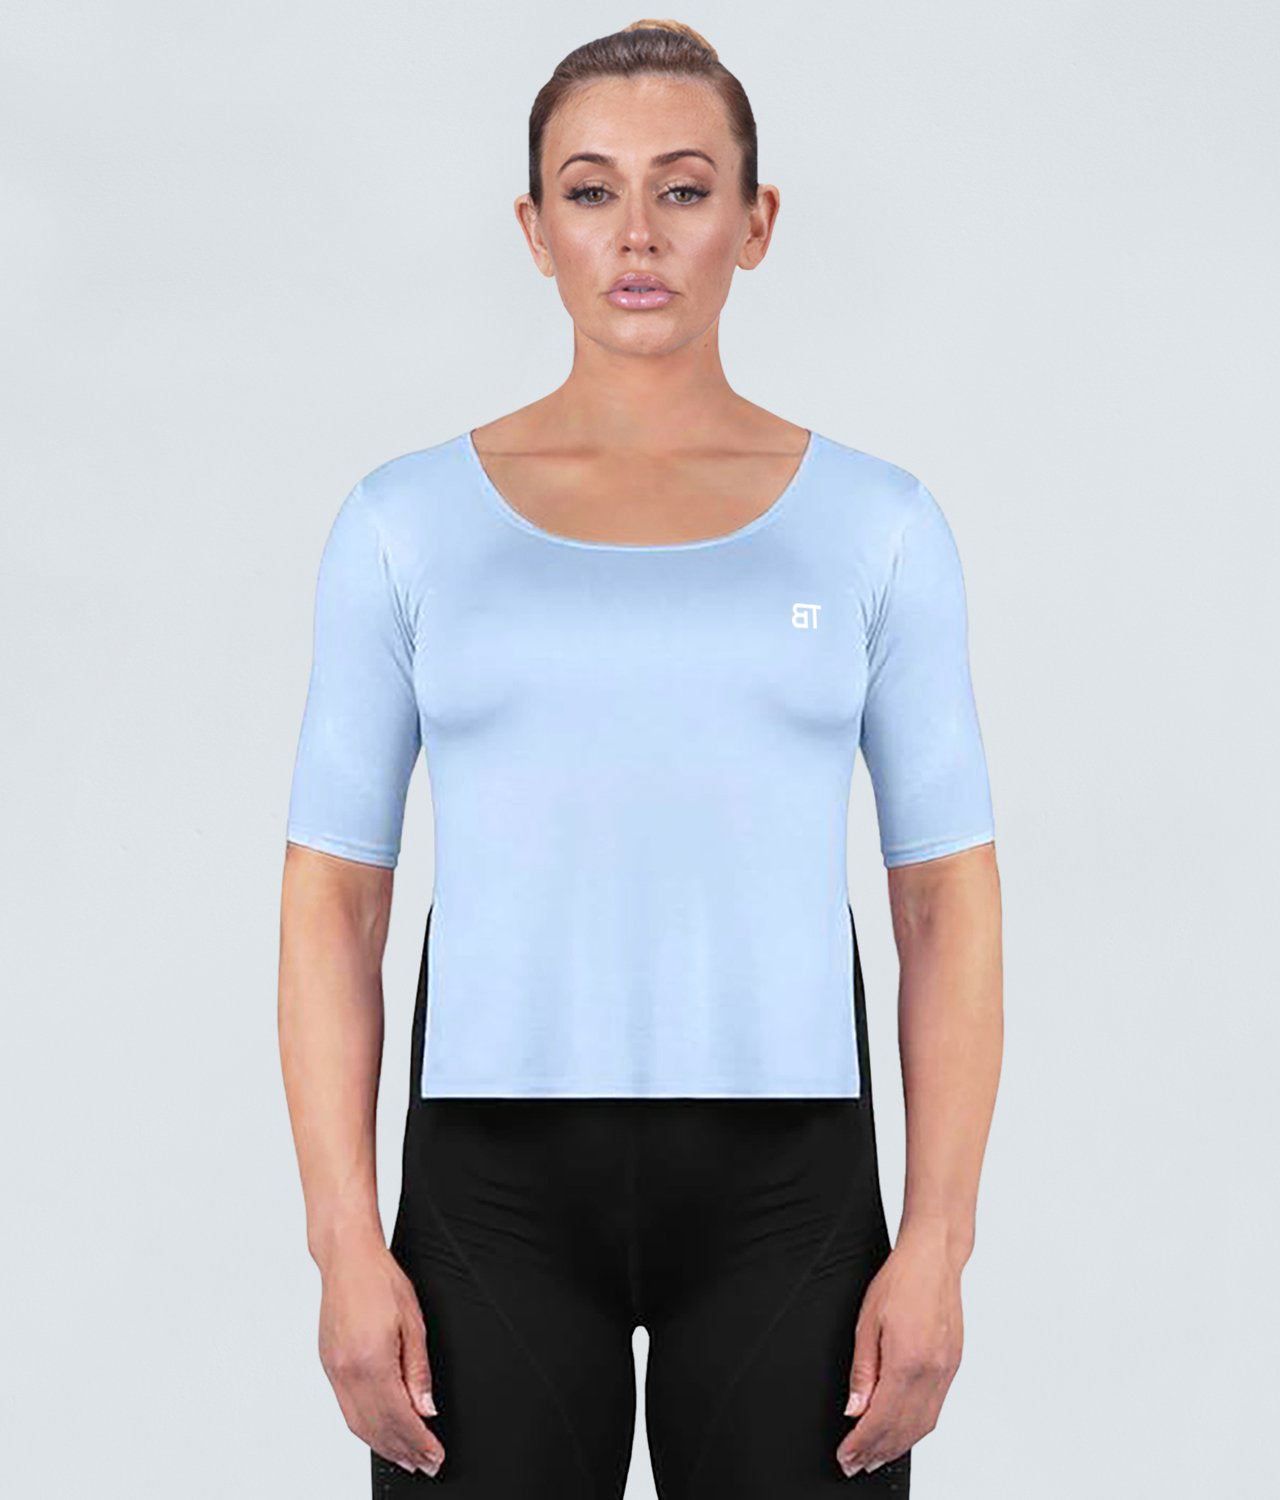 Born Tough True Form Sheer Flexible Fabric Blue Short Sleeve Gym Workout Shirt for Women